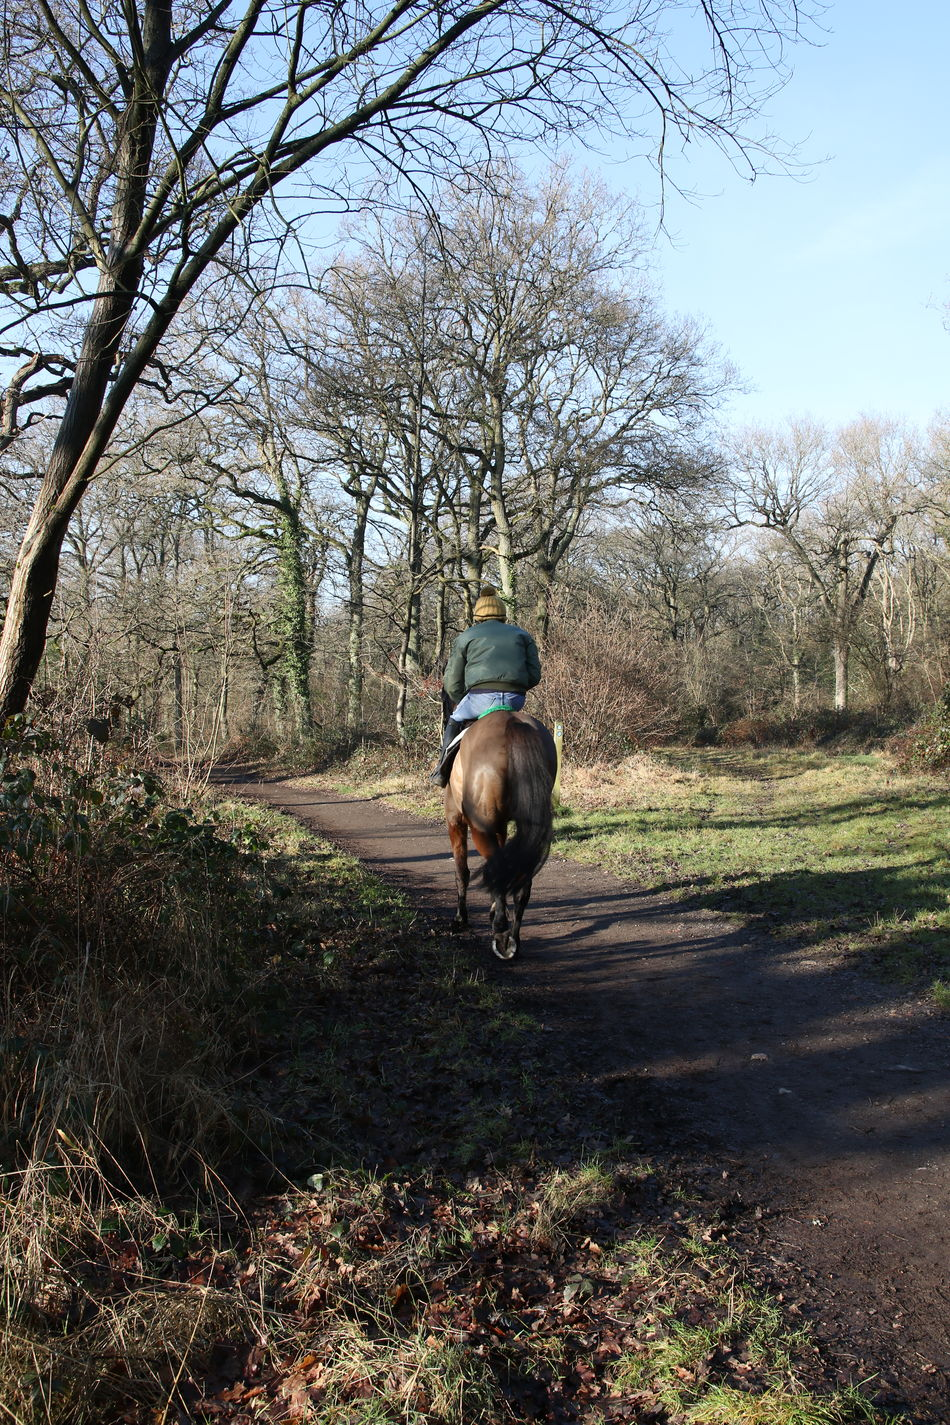 Animals In The Wild Beauty In Nature Bookham Bridleway Day Field Growth Horse Horse Riding Nature Outdoors Rider Sky Sun Surrey Countryside Tranquility Tree